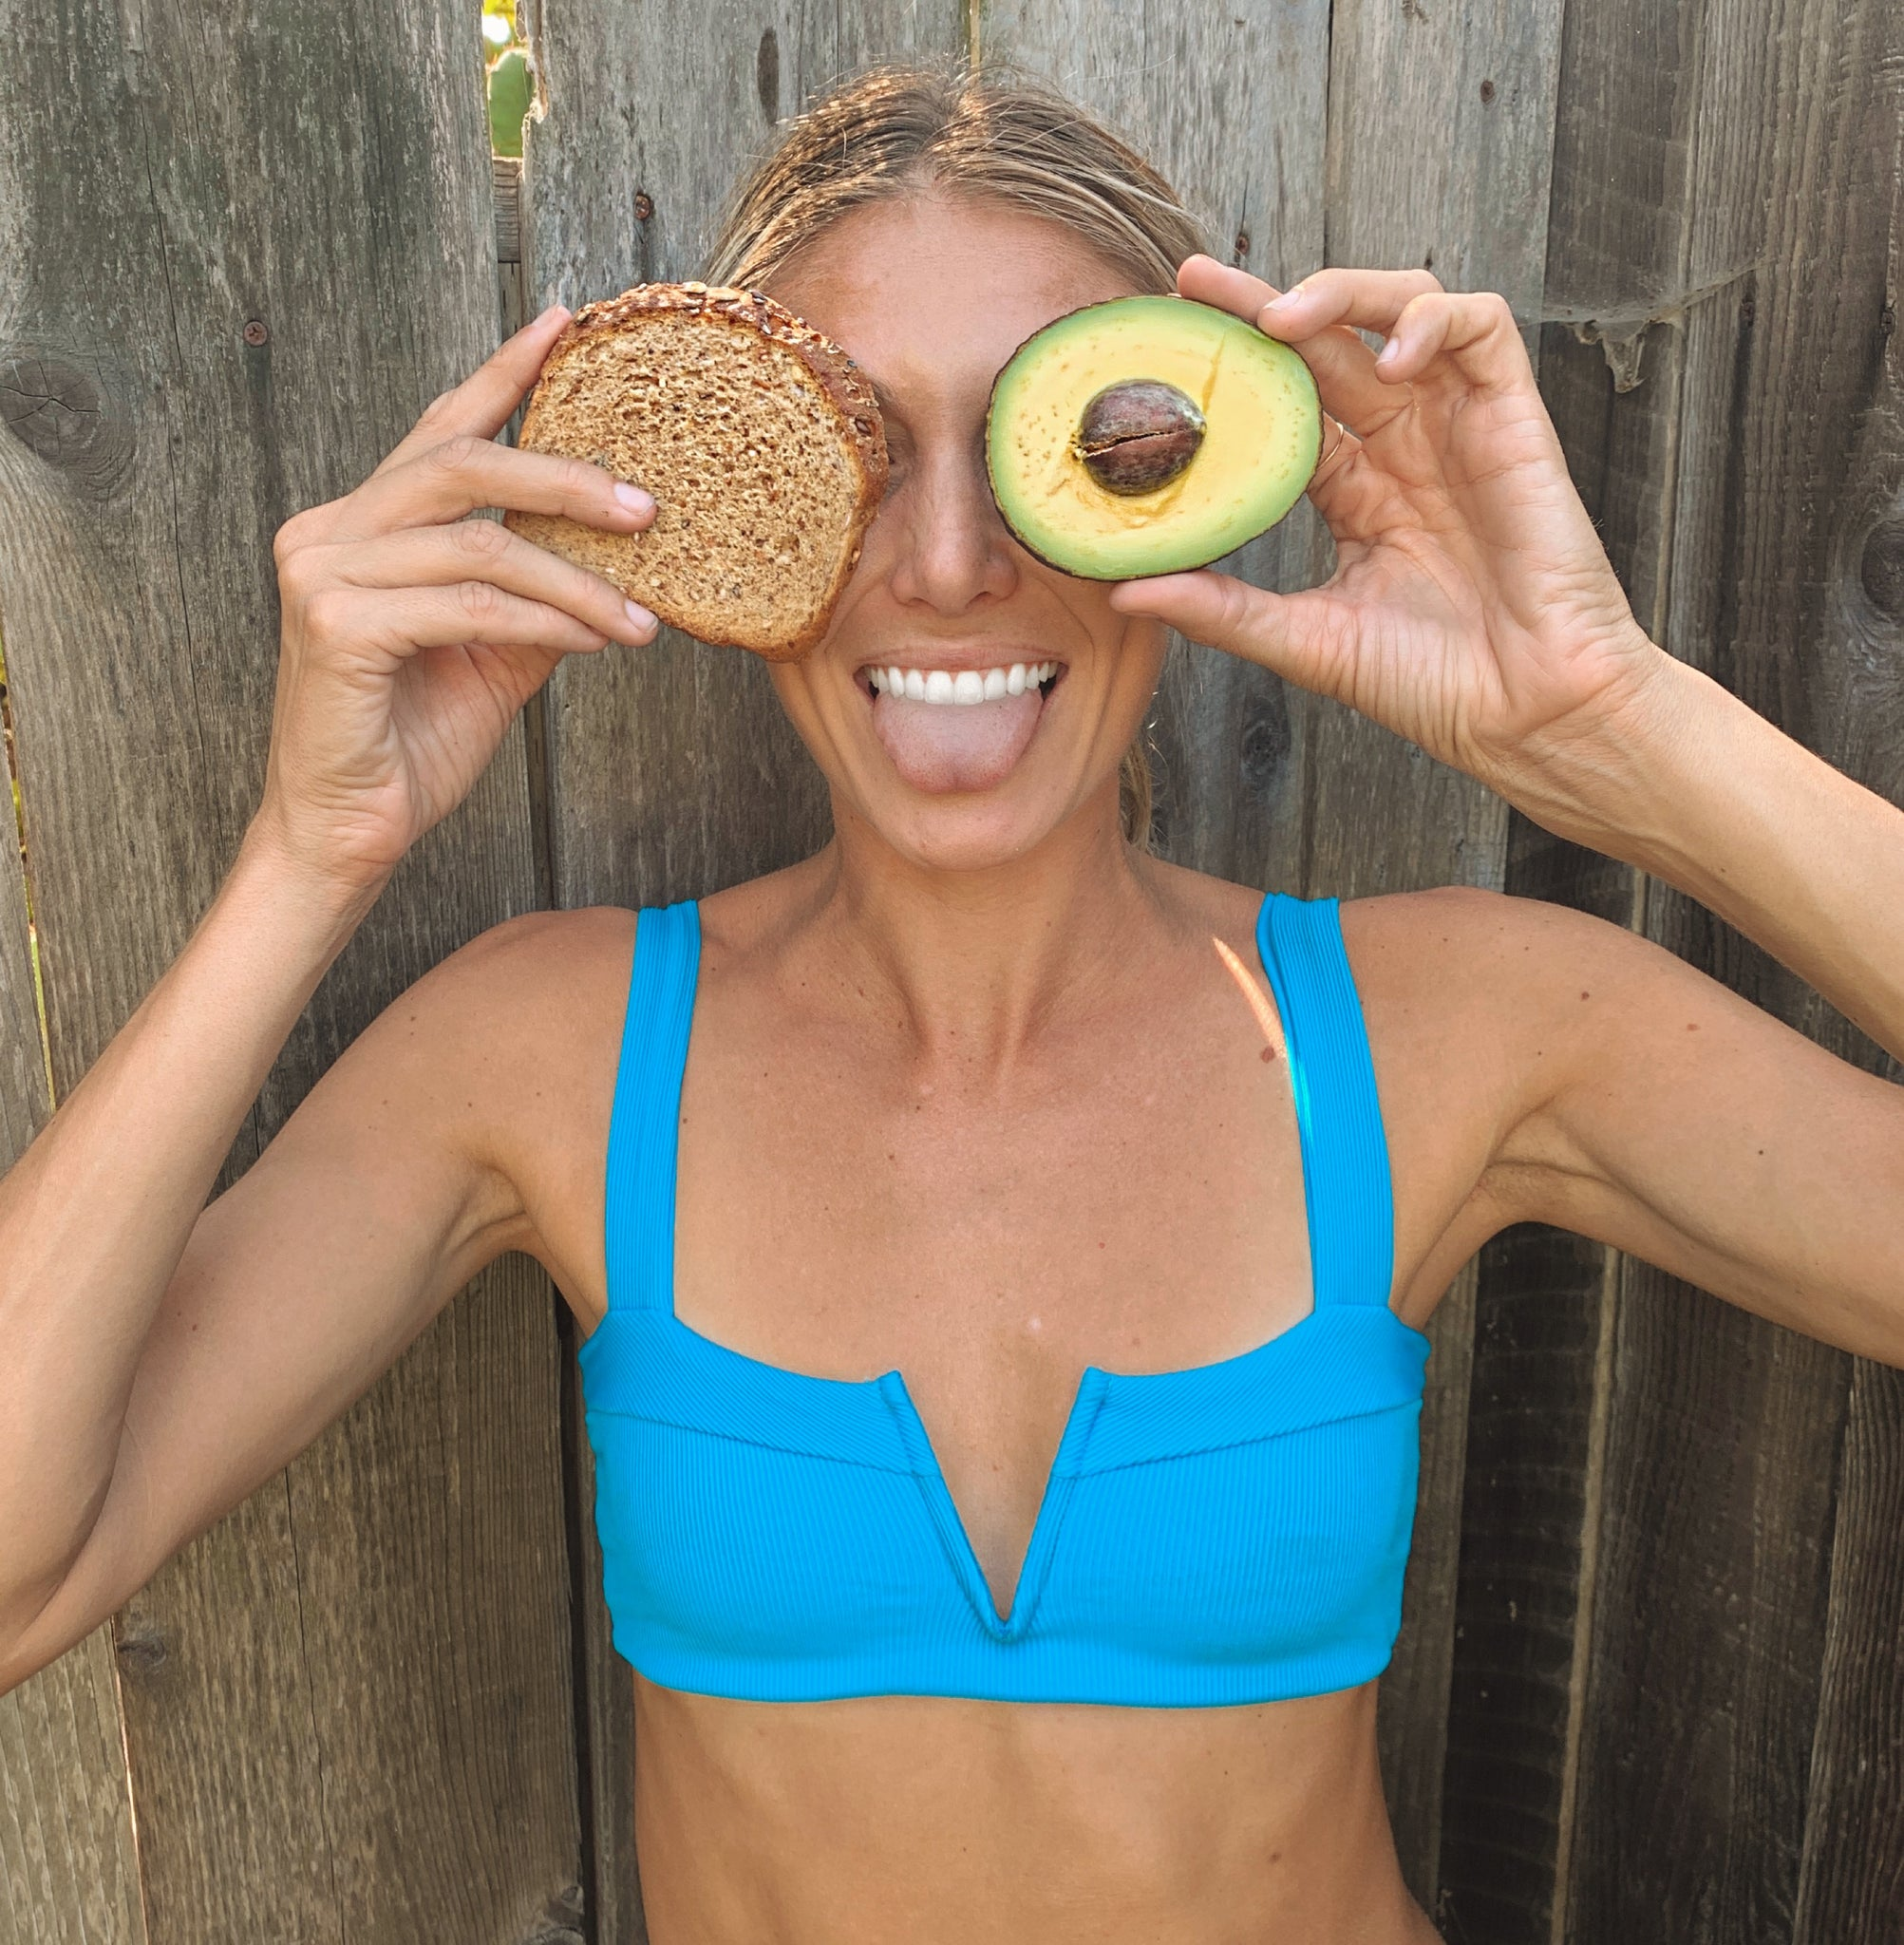 Fitness trainer McKenna Waitley wearing L*Space swim and holding an avocado and a piece of toast